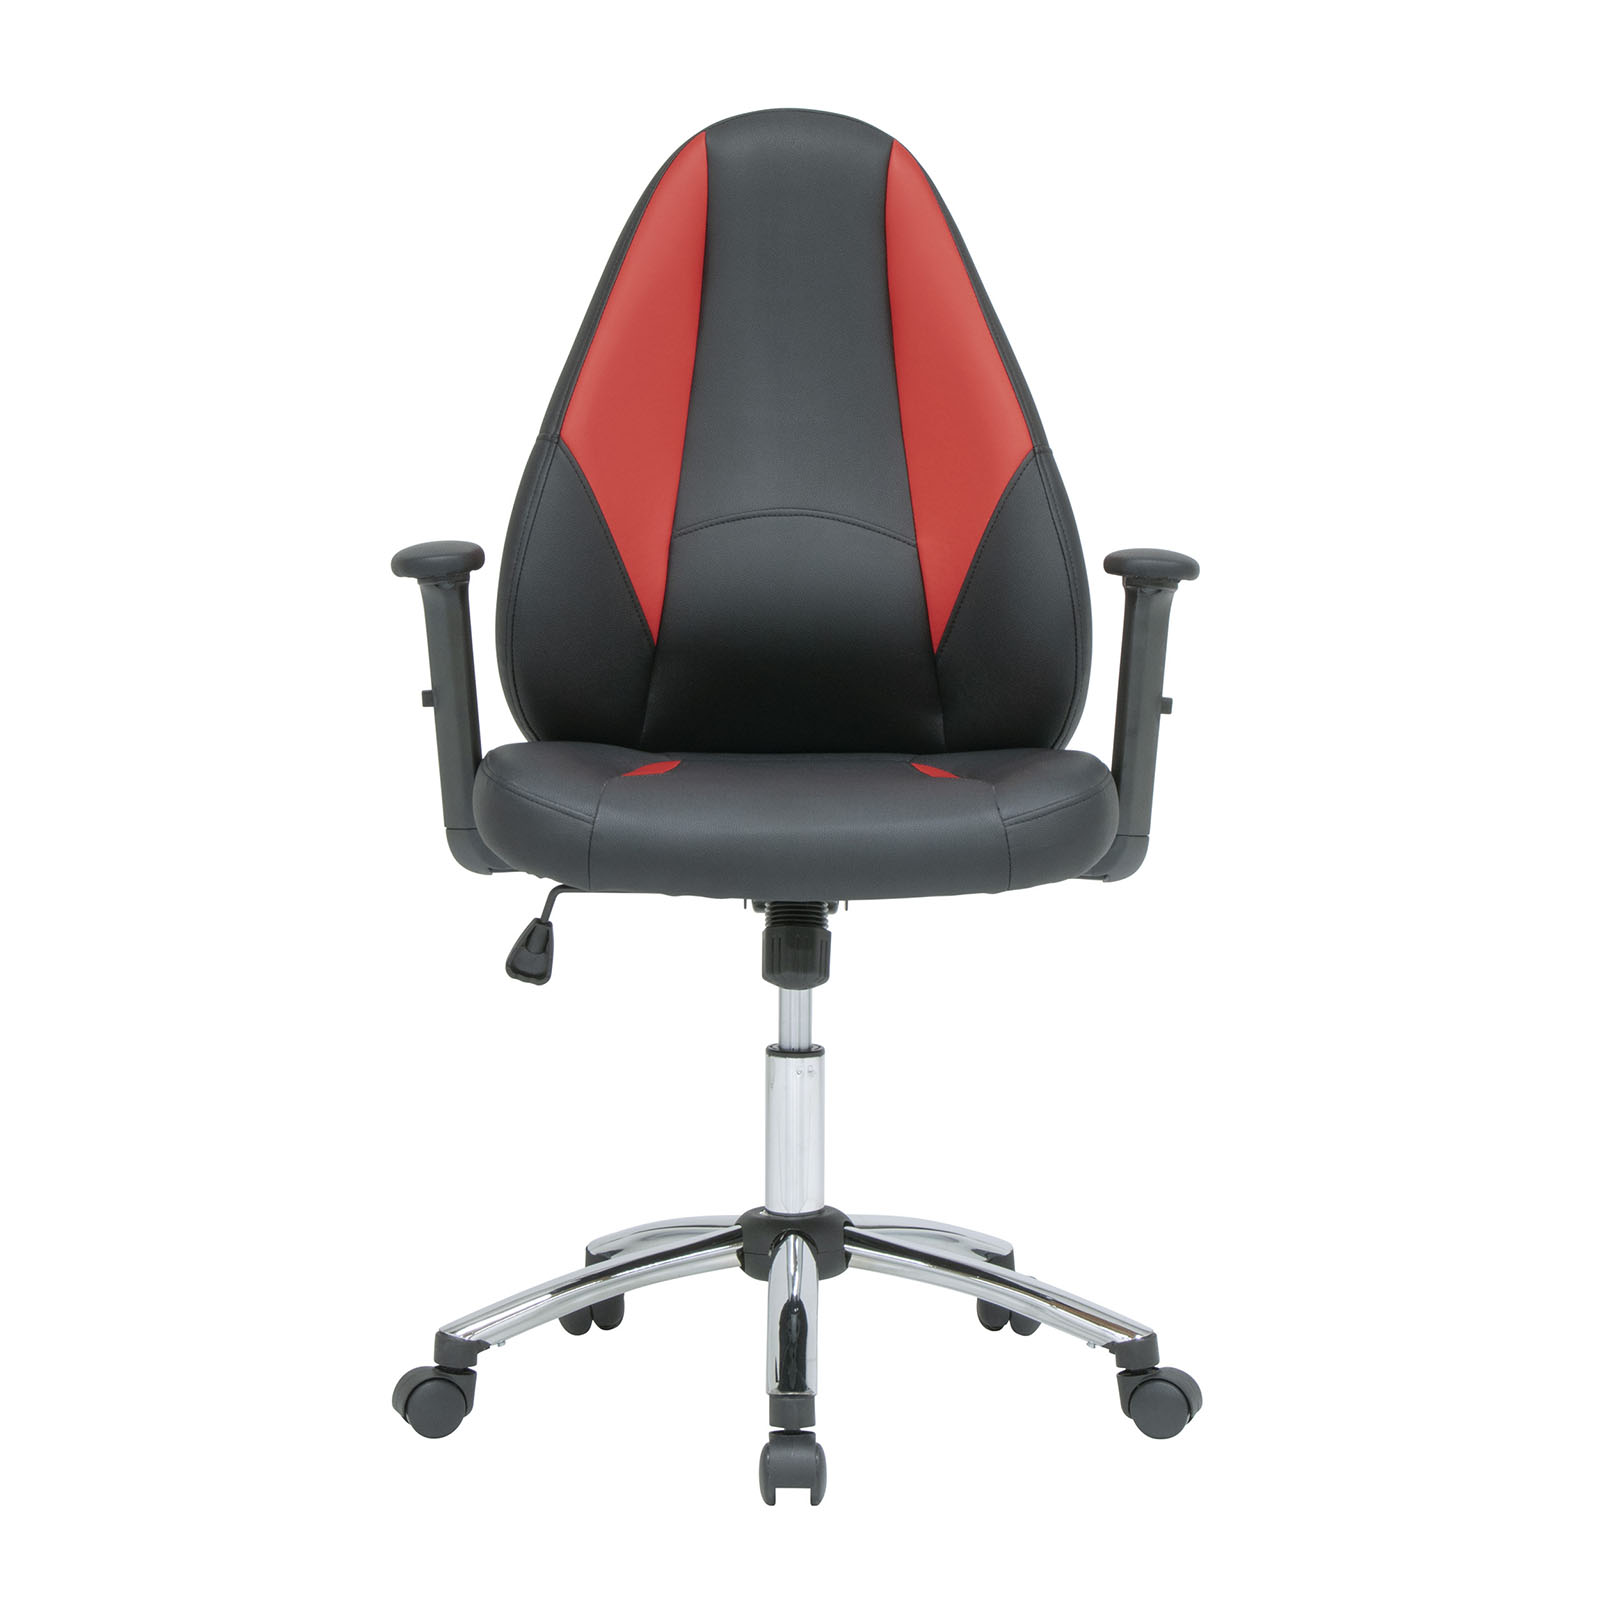 10661 Mid Back Gaming Chair front